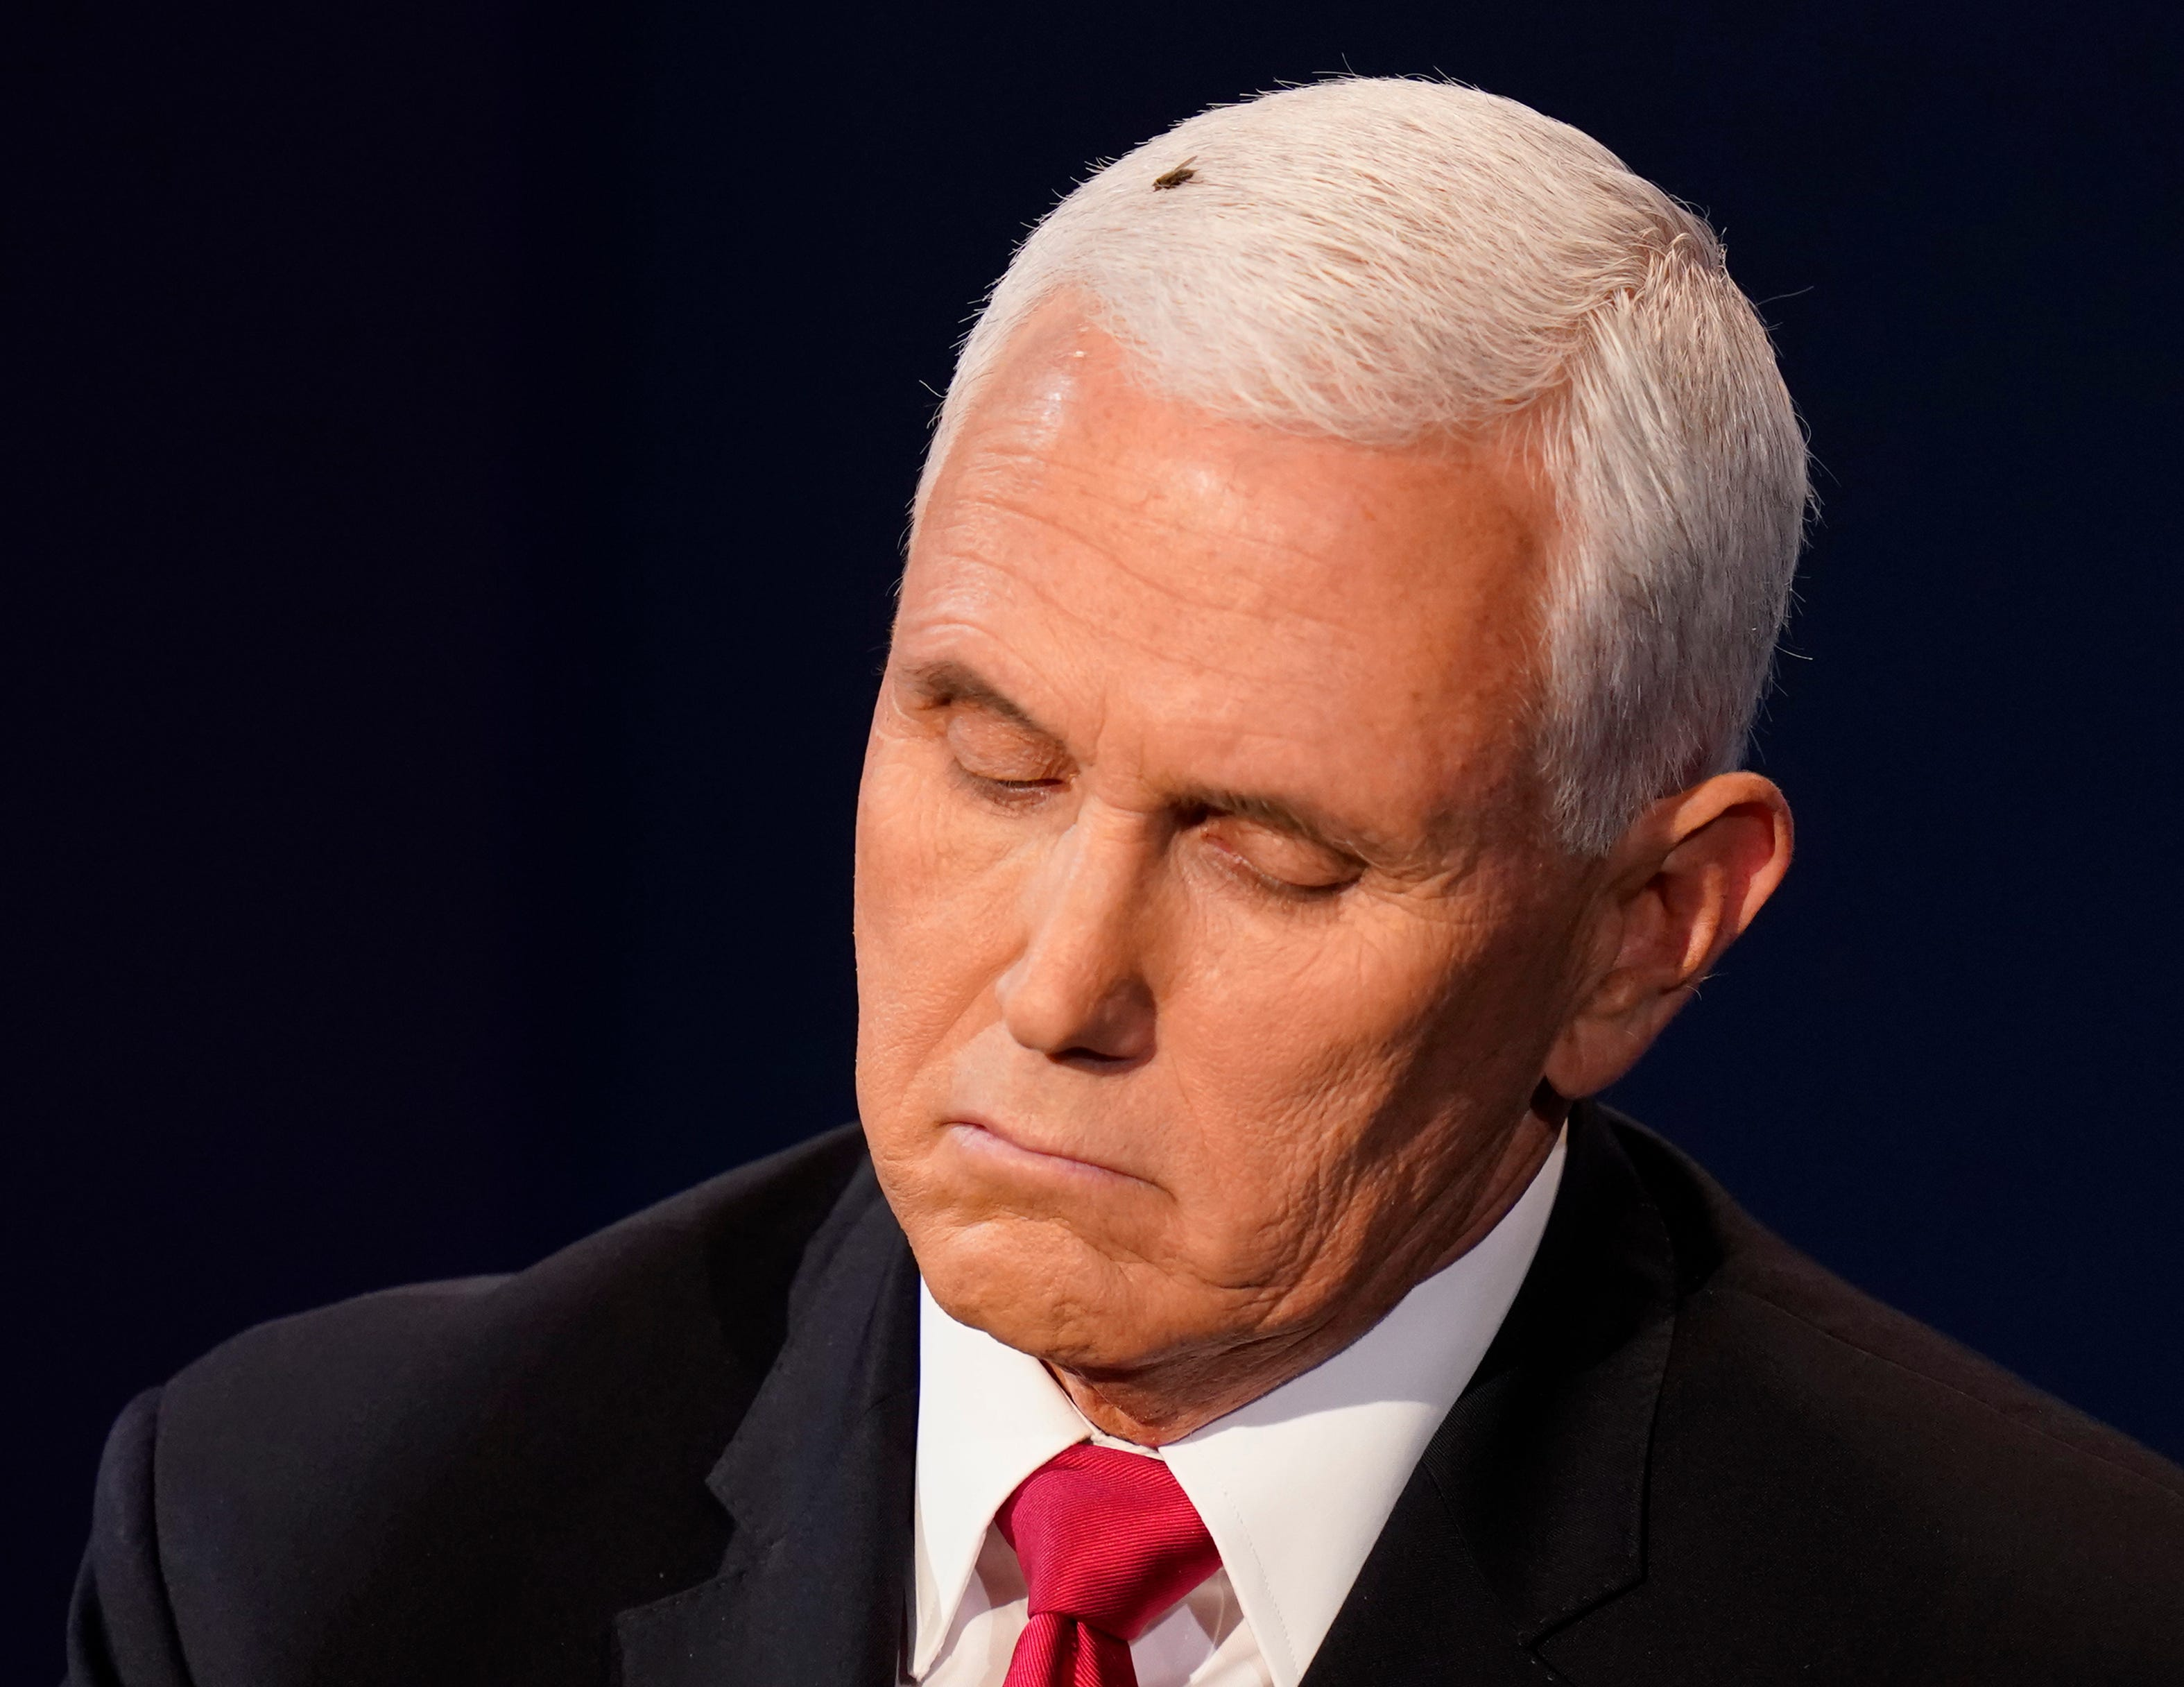 Fly lands on Mike Pence's head during debate